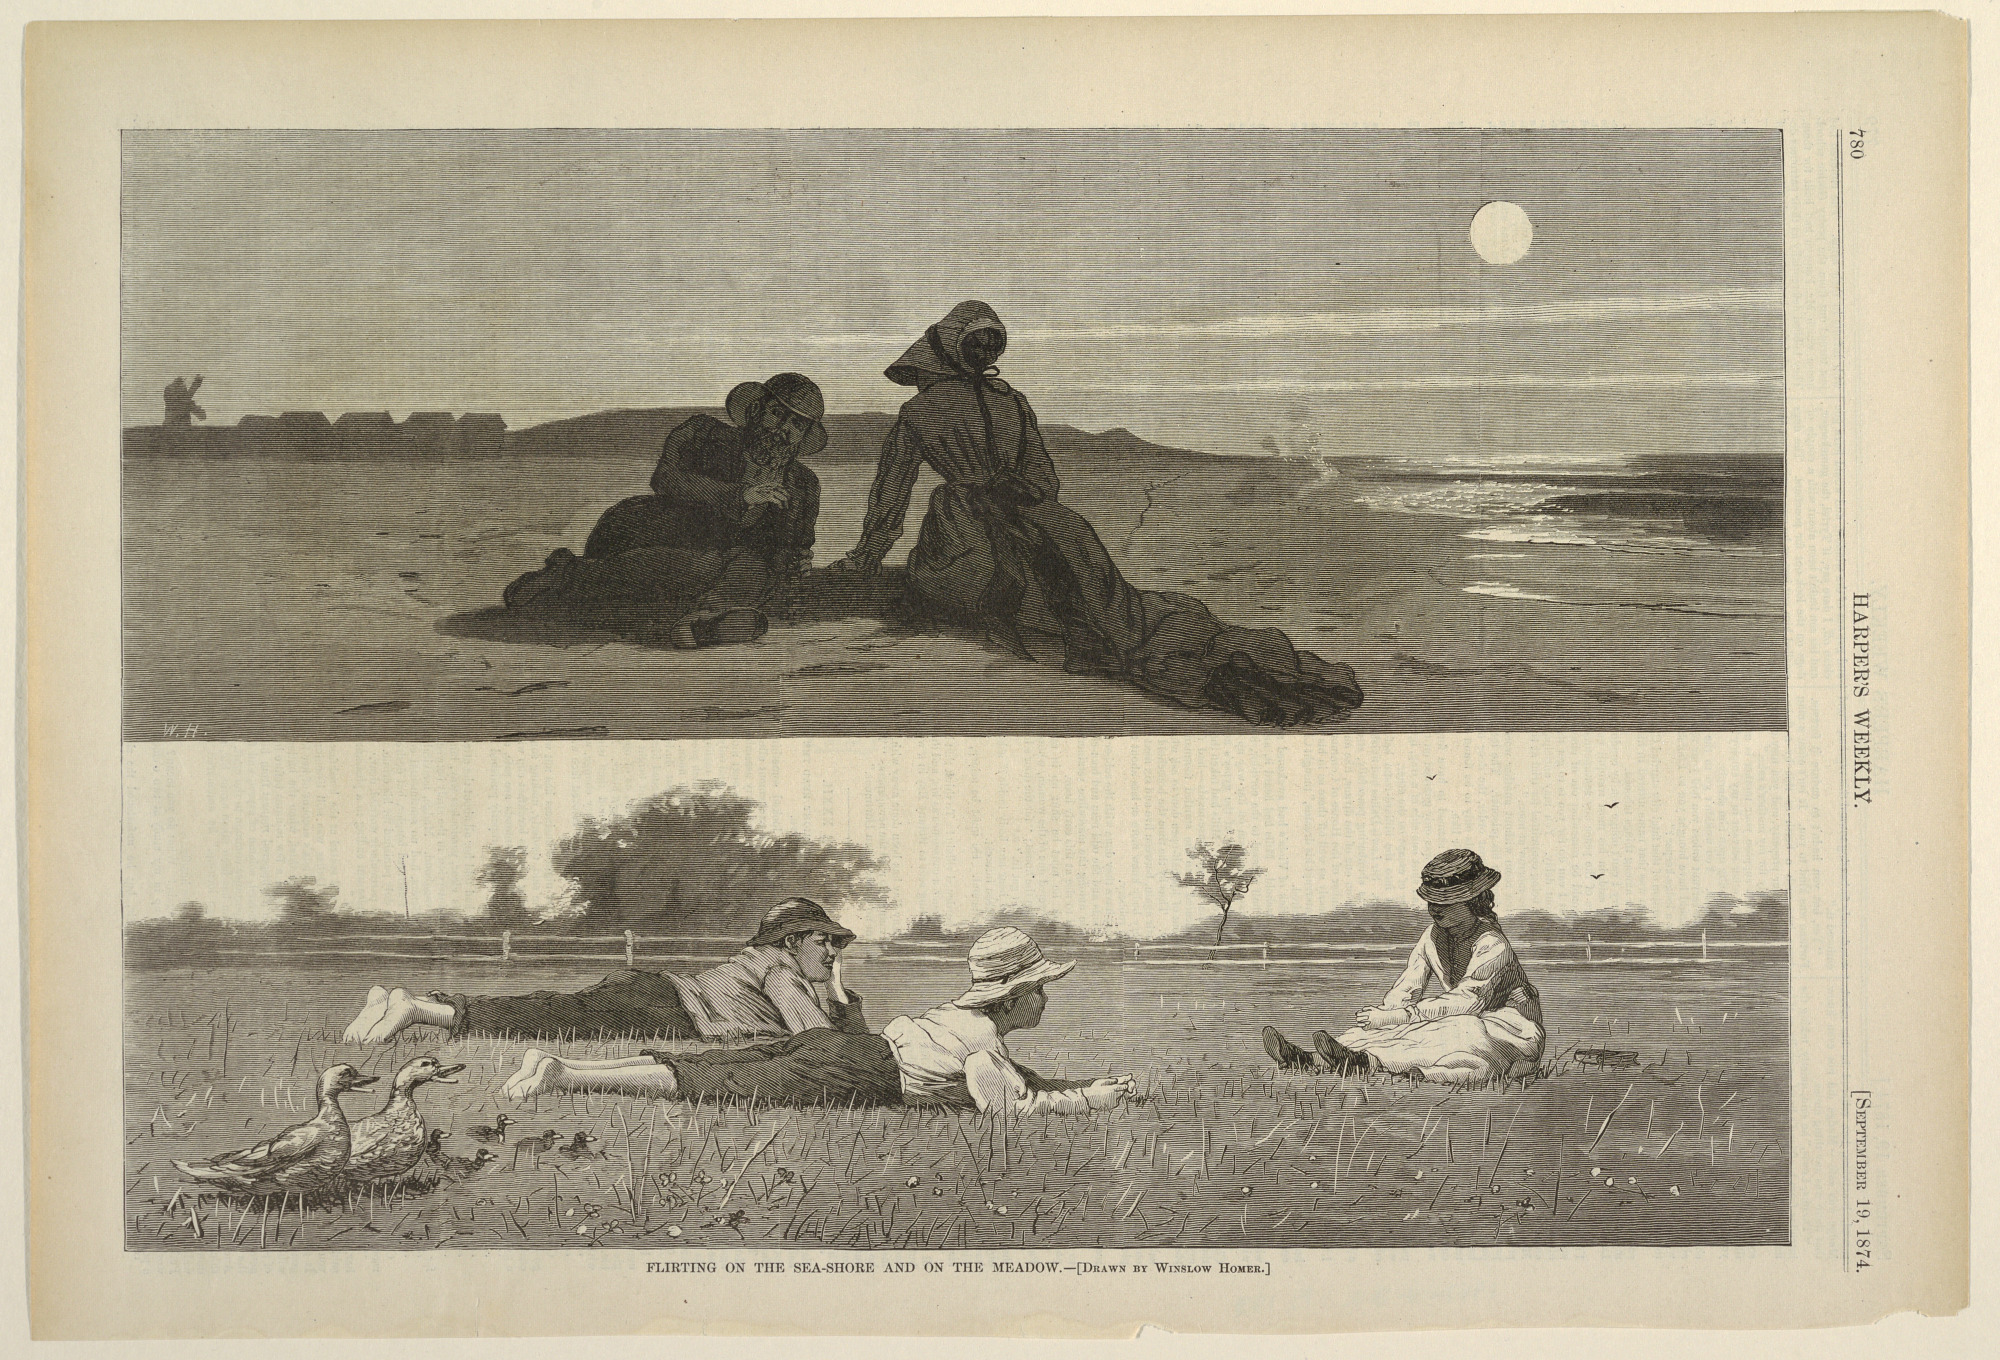 Flirting on the Sea-Shore and on the Meadow